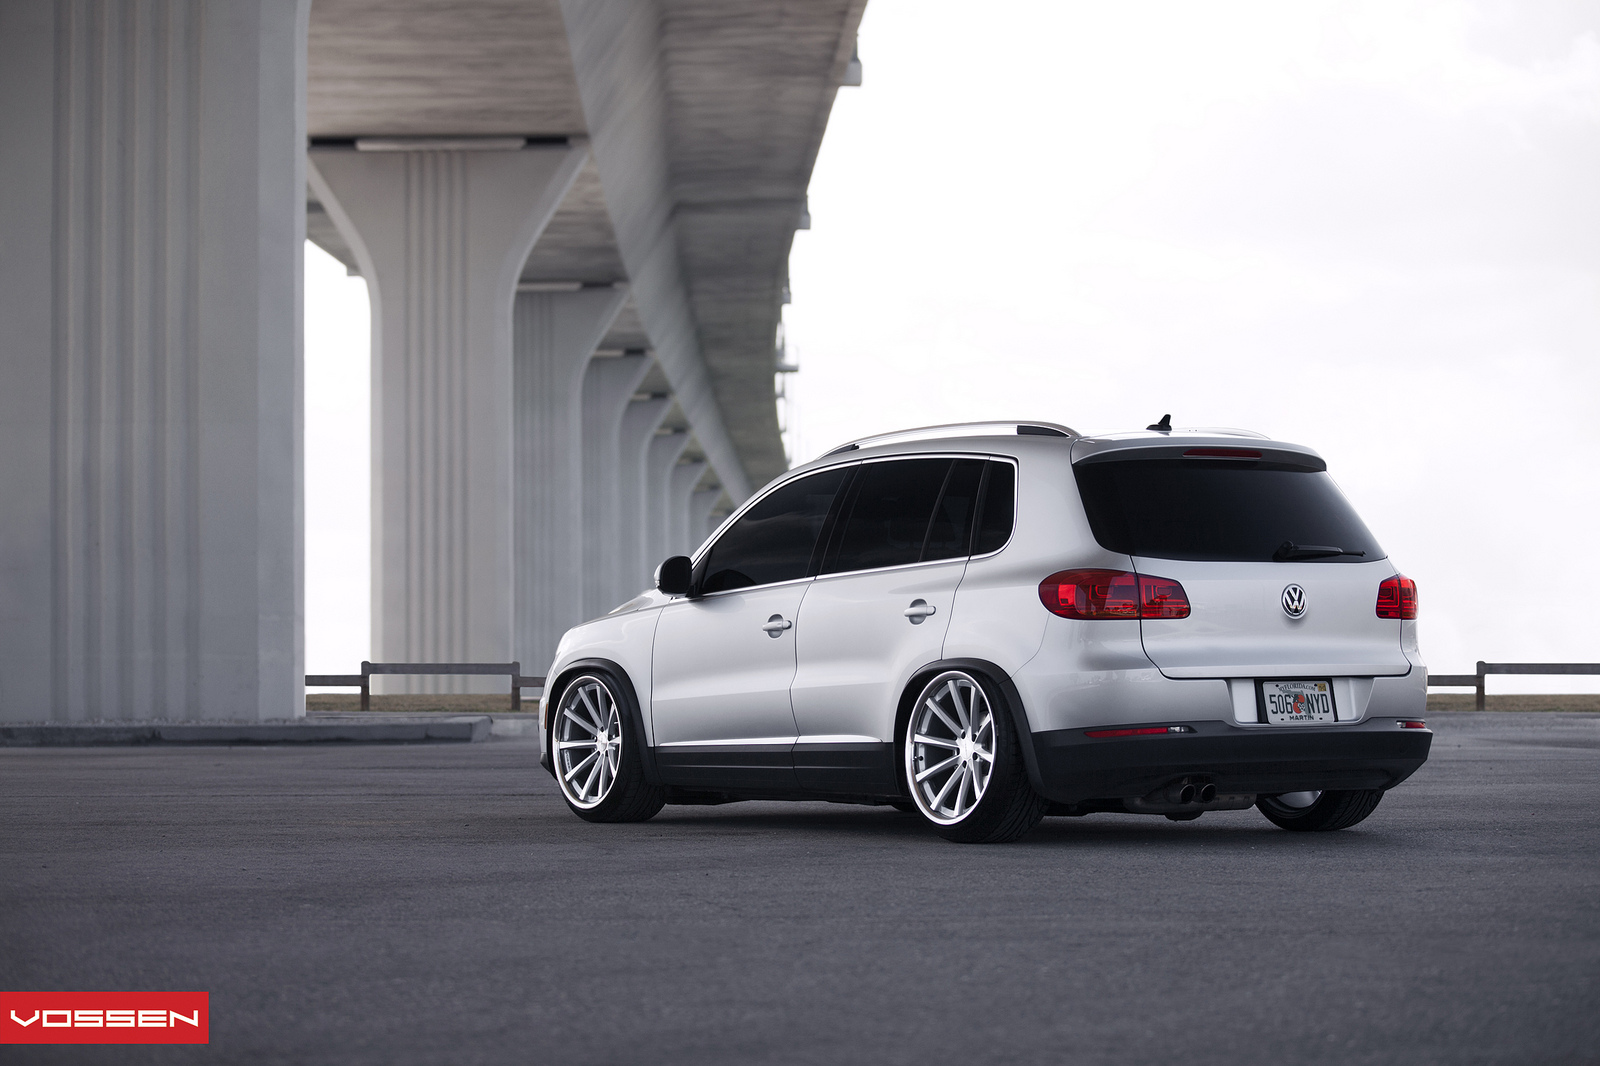 Vw Tiguan Bagger On 20-inch Vossen Wheels